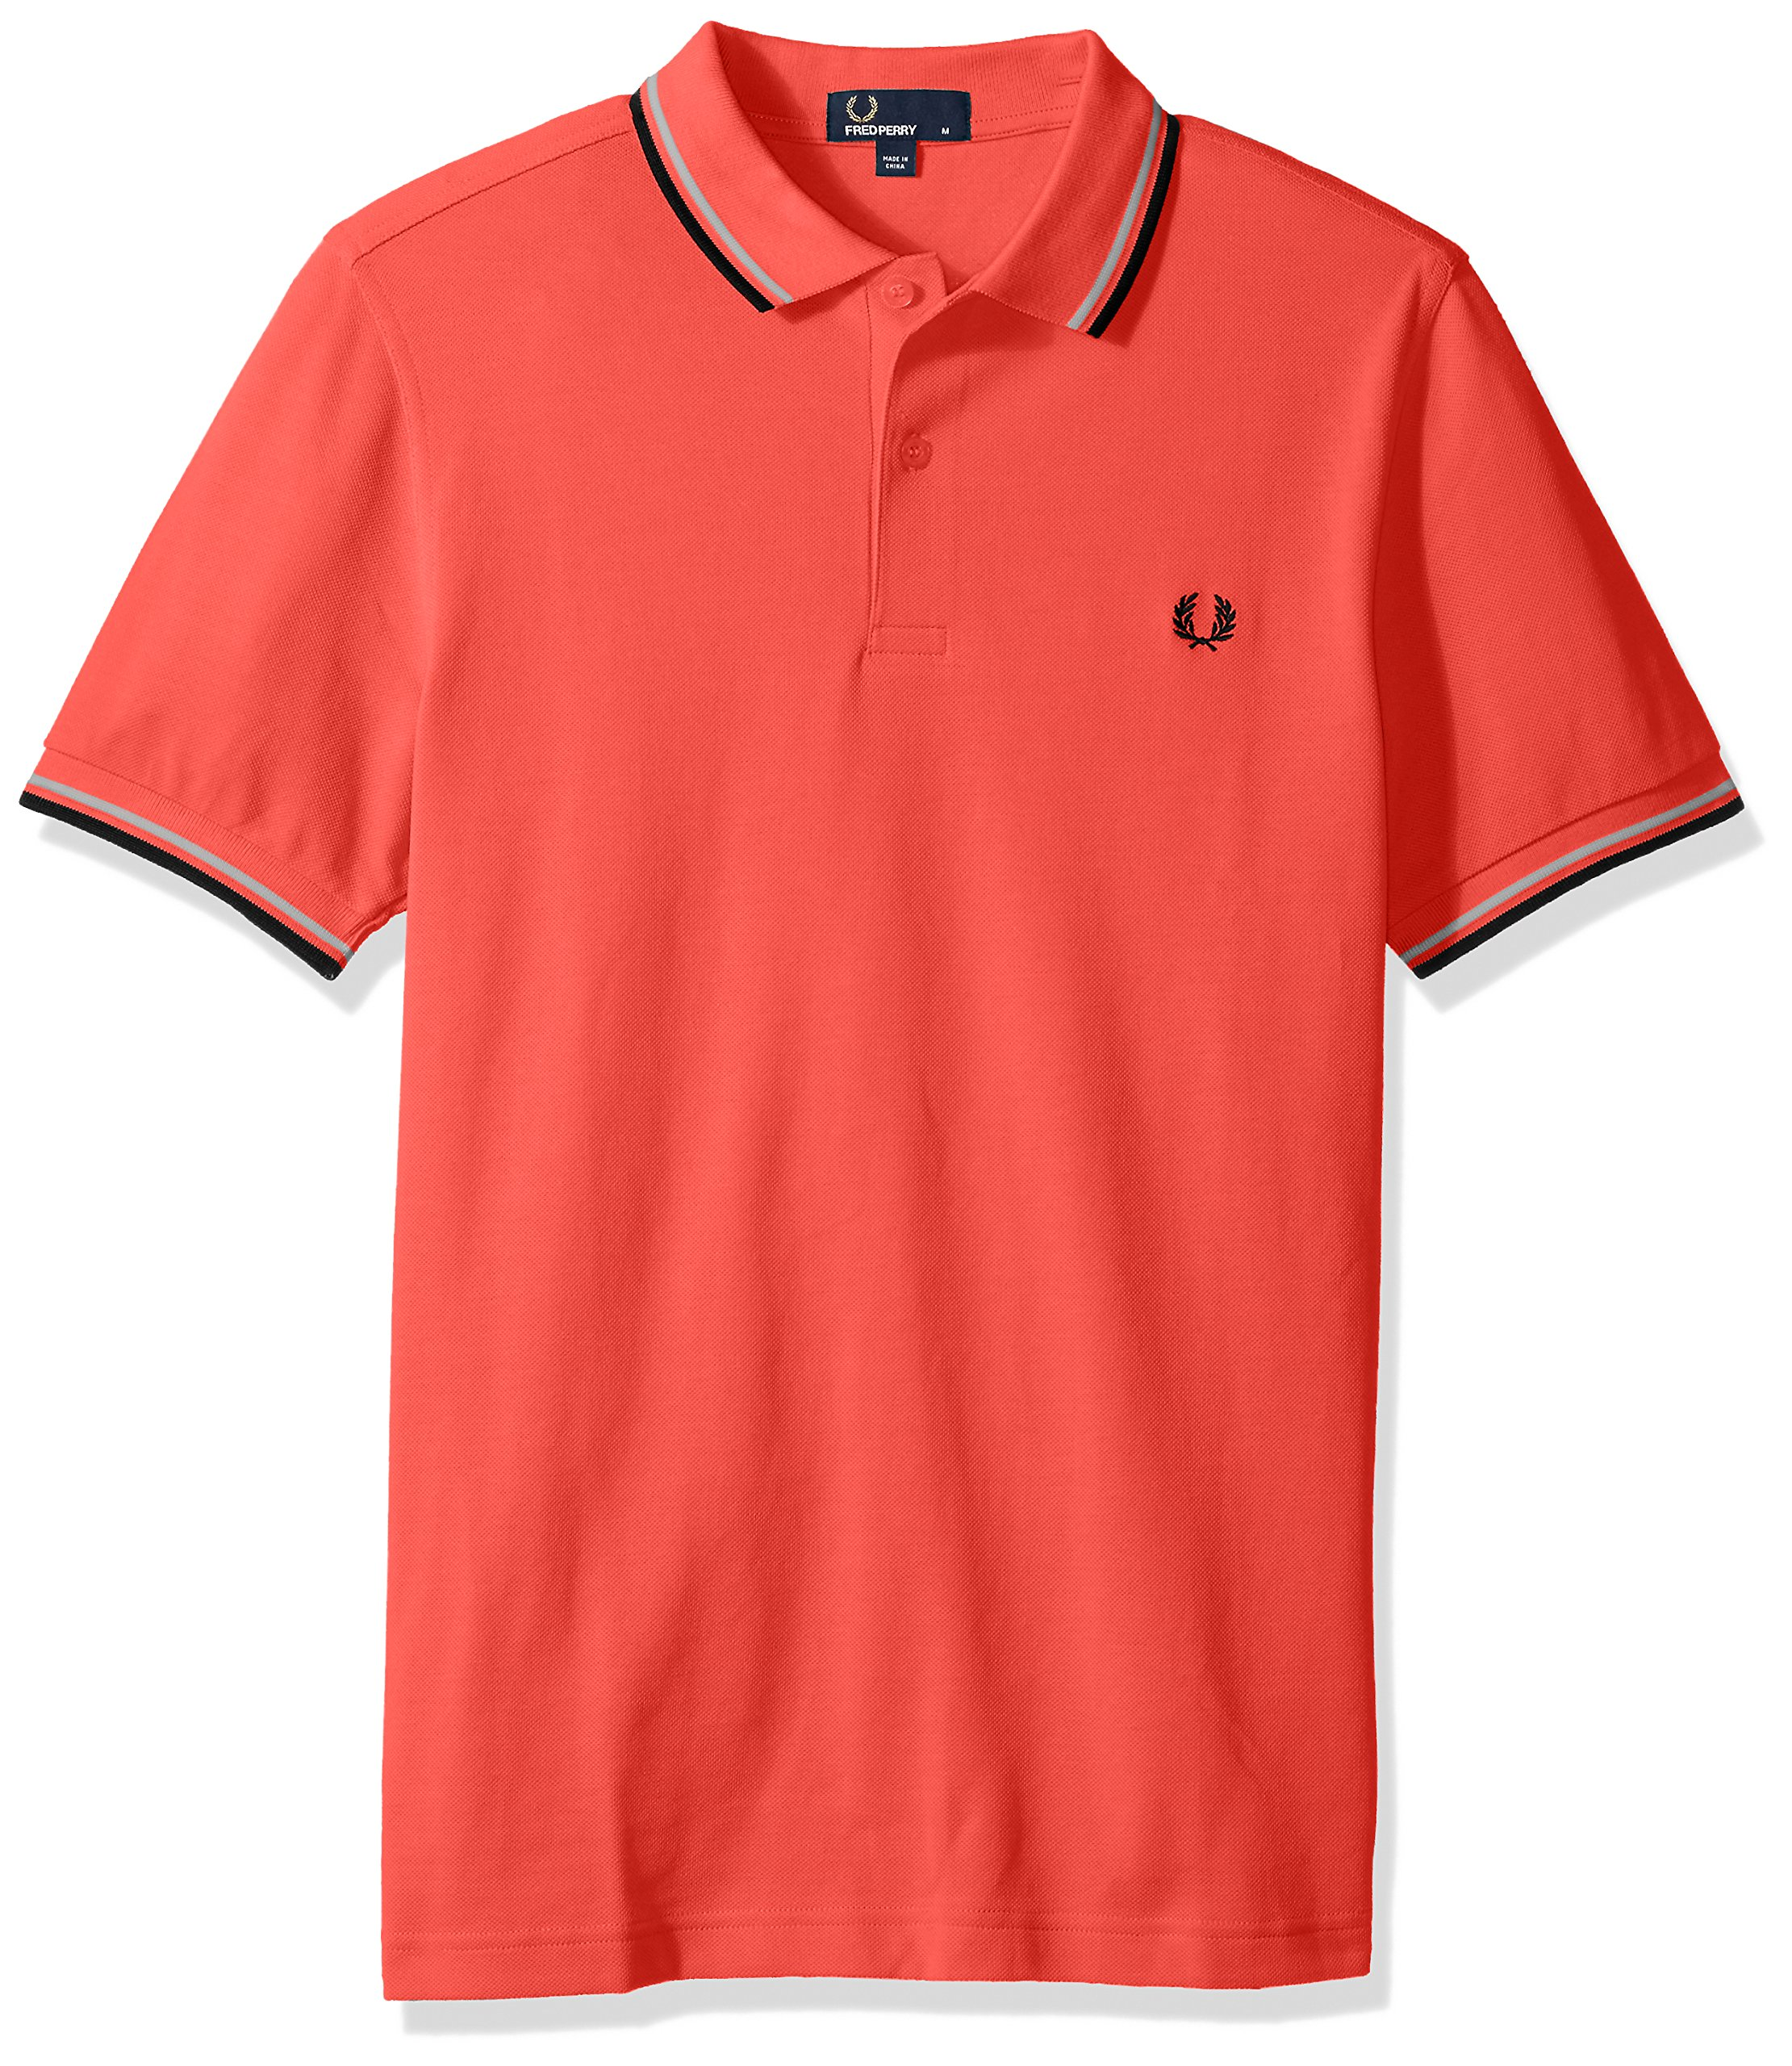 Fred Perry Men's Twin Tipped Polo Shirt, Trpred/SW/NVY, X-Small